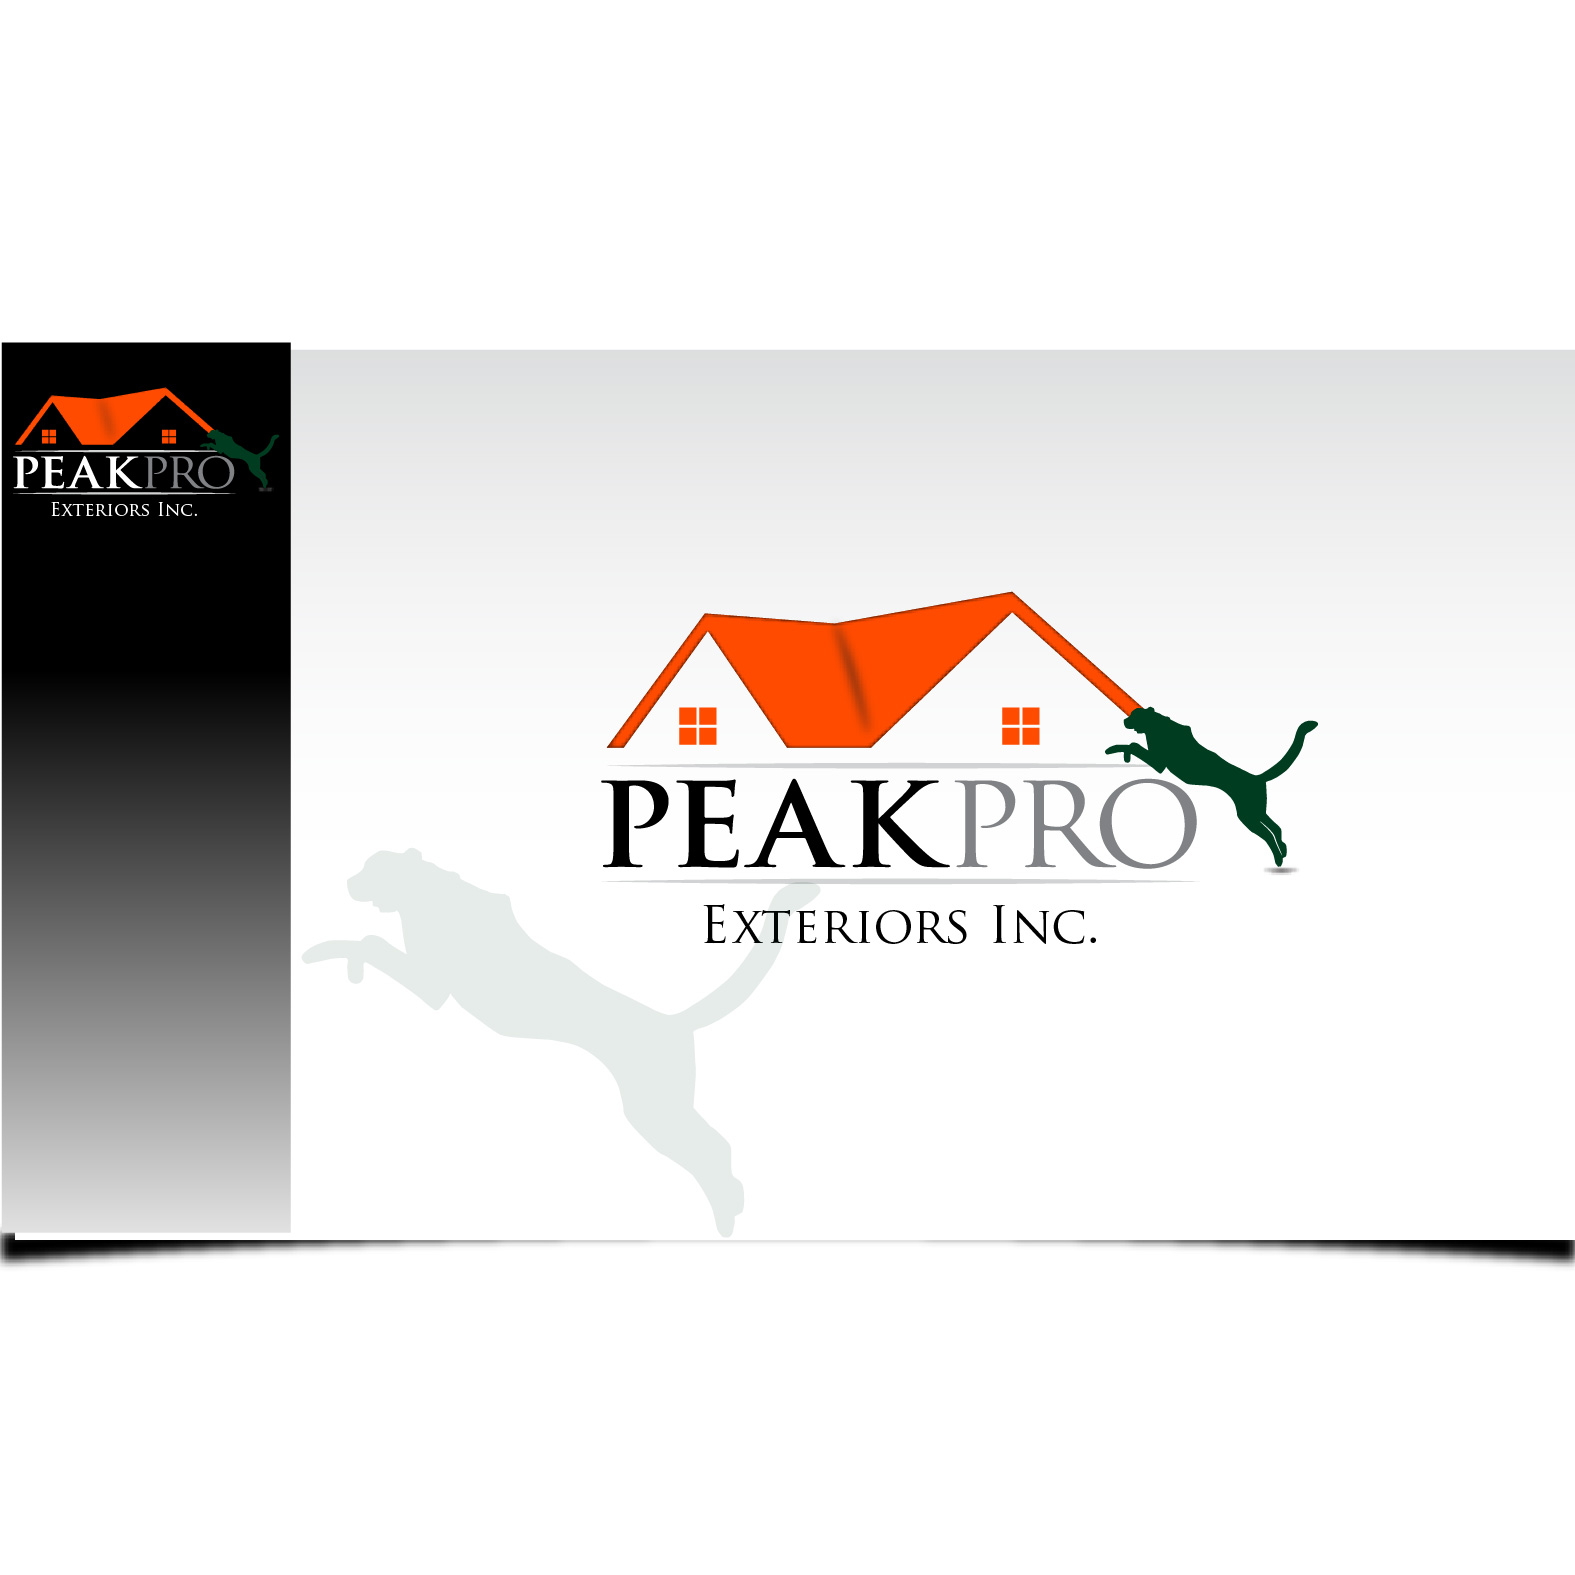 Logo Design by Robert Engi - Entry No. 113 in the Logo Design Contest Captivating Logo Design for Peakpro Exteriors Inc..